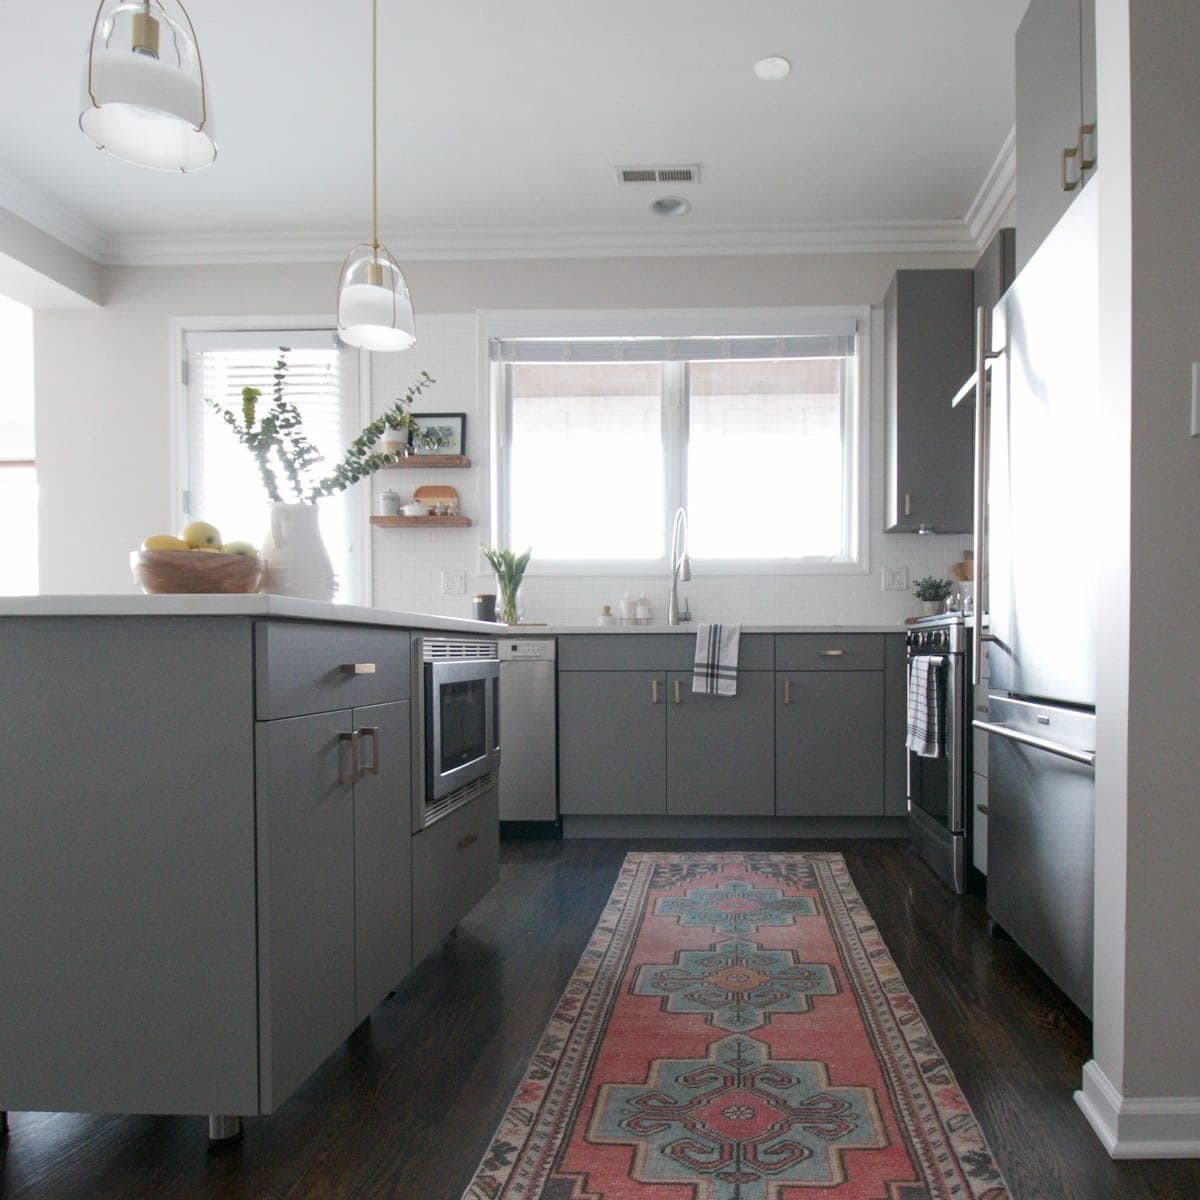 White Kitchen Cabinets With Gray Countertops: White + Gray Kitchen With Brass Hardware